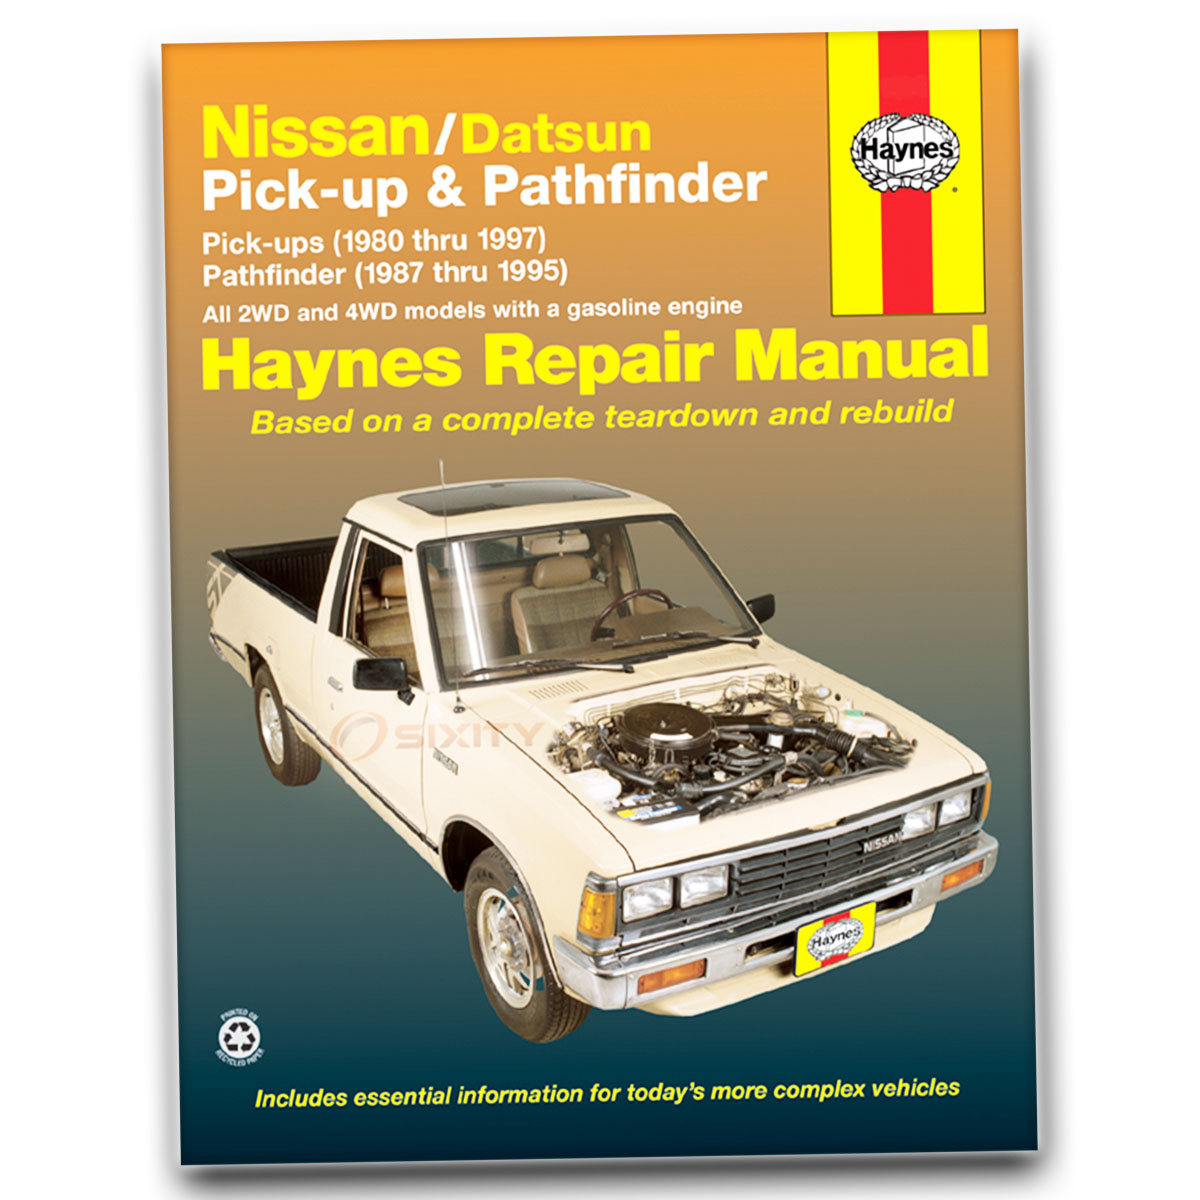 haynes repair manual for nissan d21 e xe base se shop service garage rh  ebay com 2005 Nissan Pathfinder Manual Book 2005 Nissan Pathfinder Repair  Manual